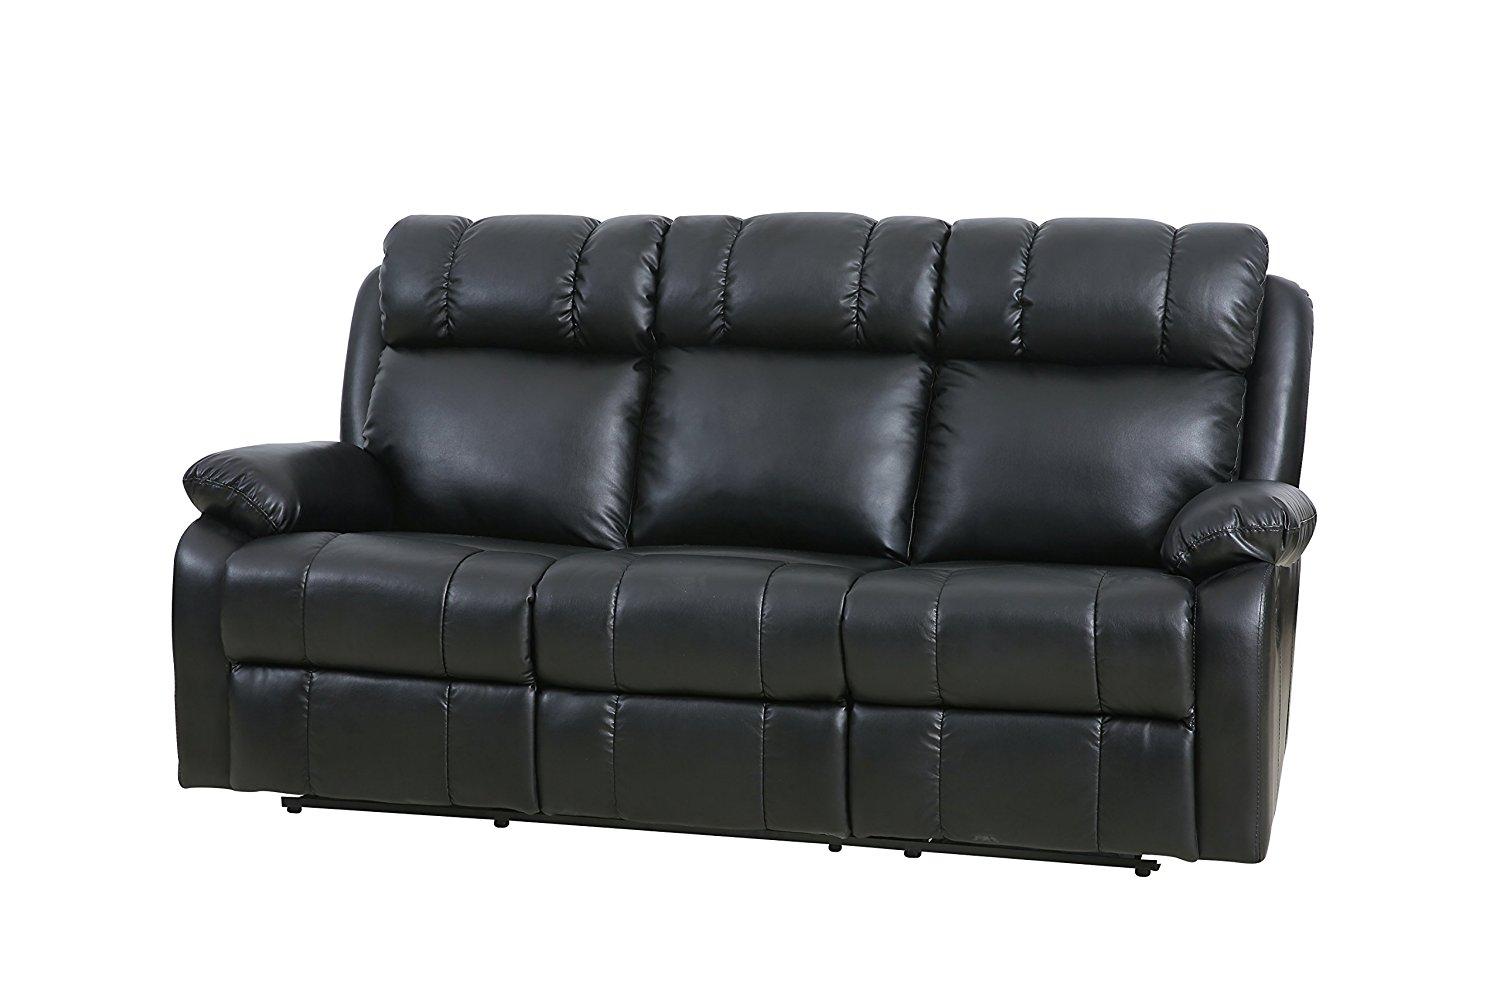 couch and chair set counter height covers sofa recliner sets loveseat chaise reclining leather accent